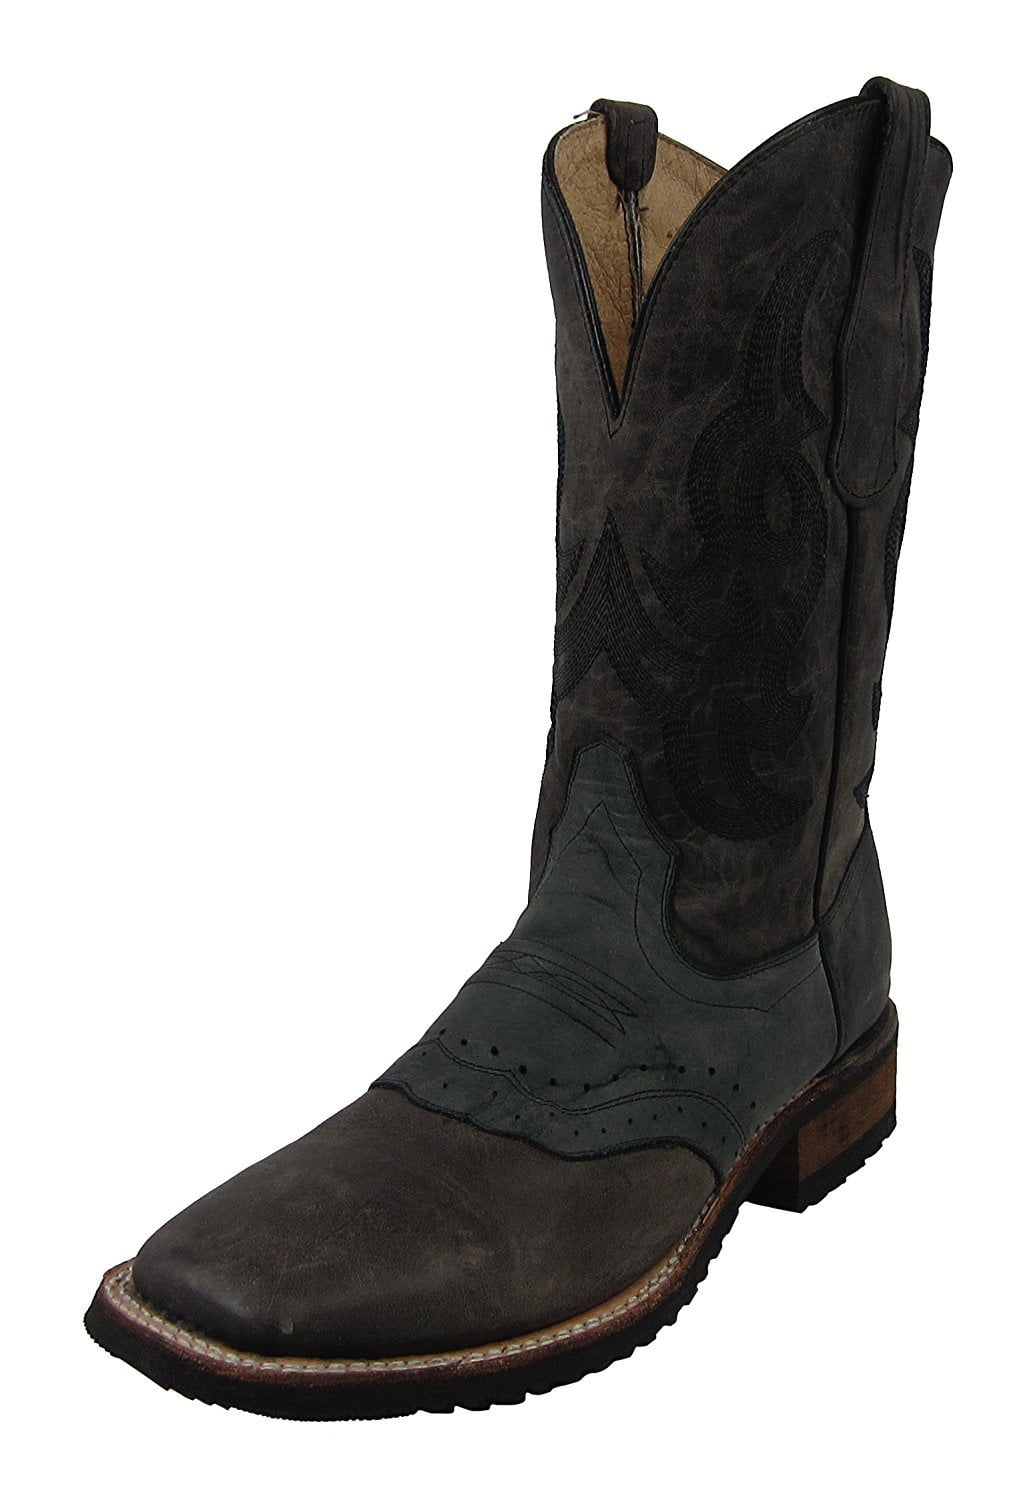 5441efce1db Circle G by Corral Men's Grey Embroidery Rubber Sole Spur Guard Square Toe  Cowboy Boots L5303 (13 EE(W) US)